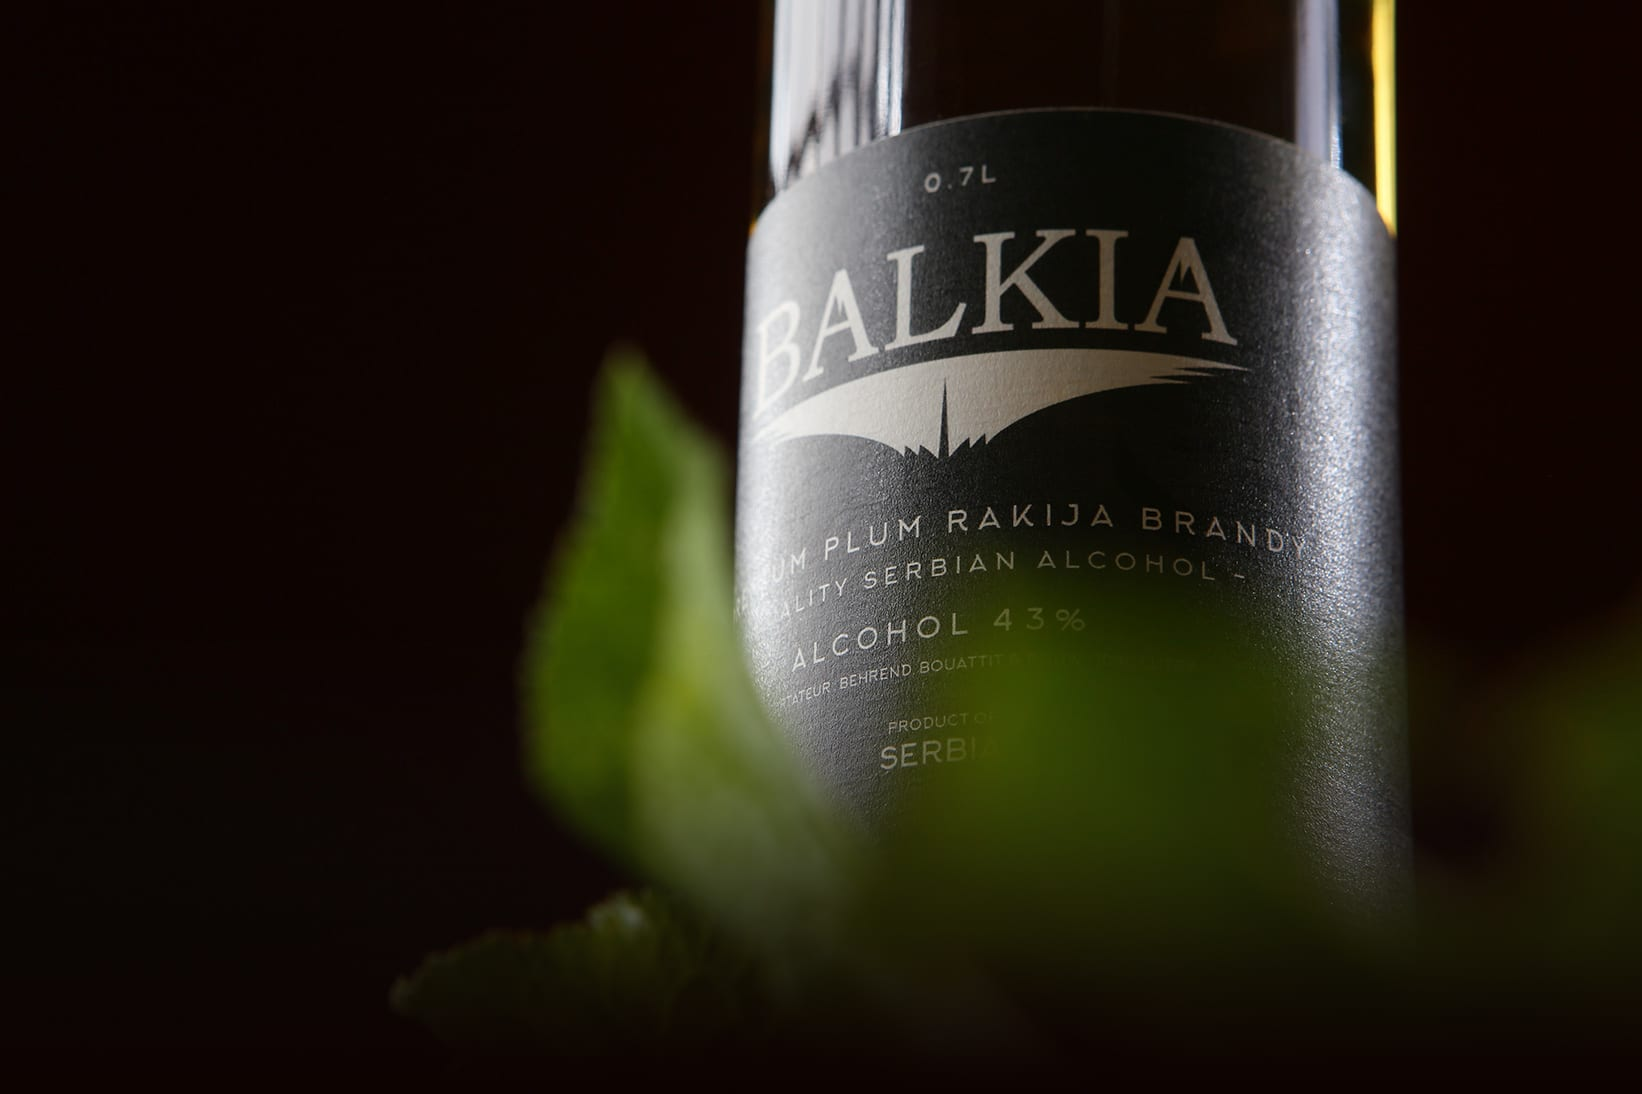 Balkia - Swiss brand of plum brandy typical of the Balkans